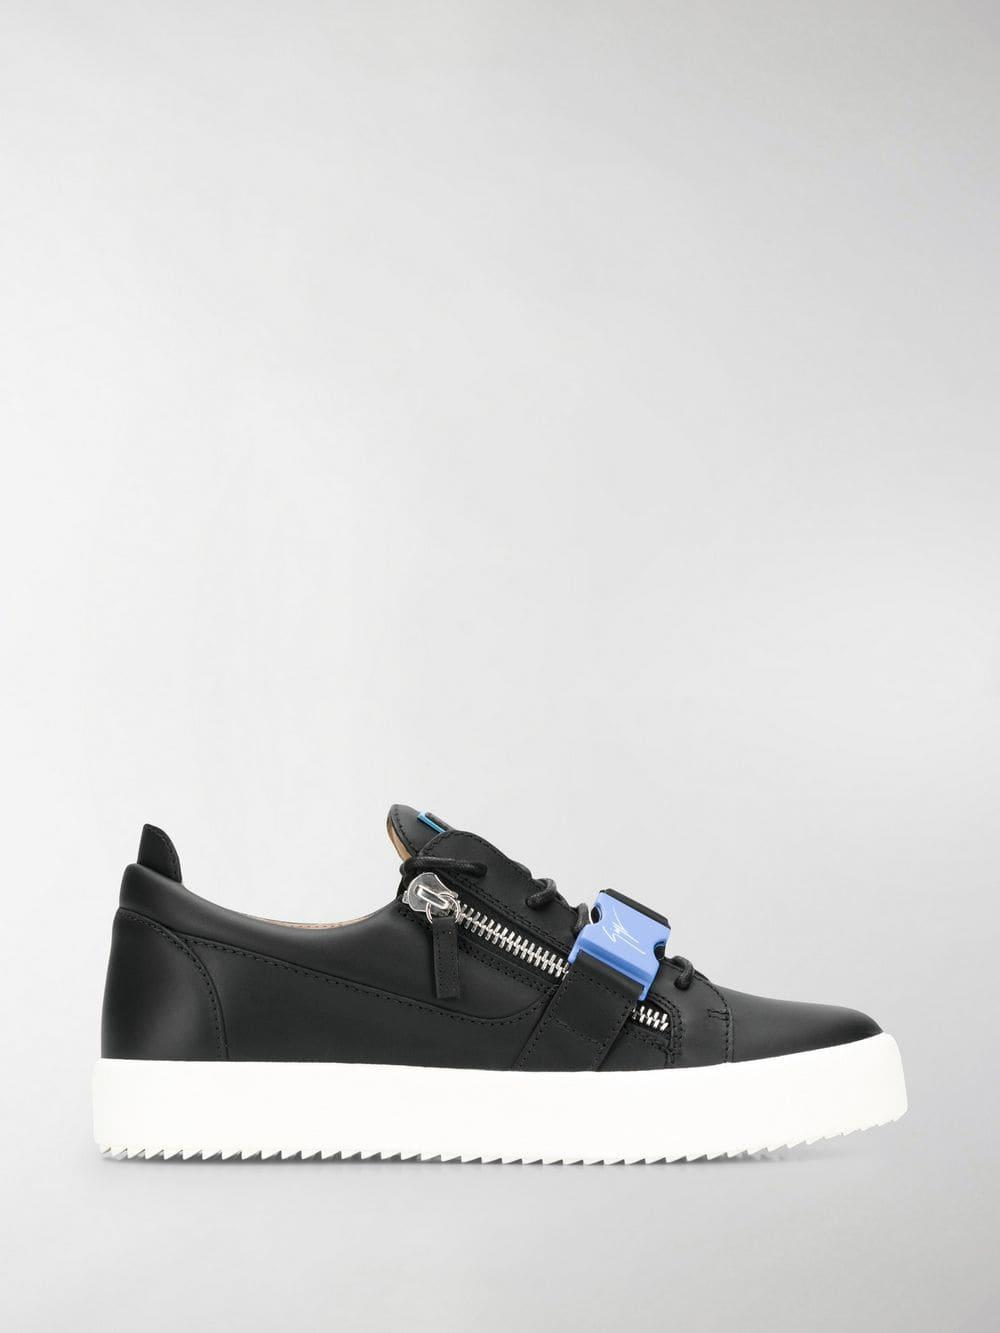 fee08f62174 Lyst - Giuseppe Zanotti Buckle May Low Top Trainers in Black for Men ...